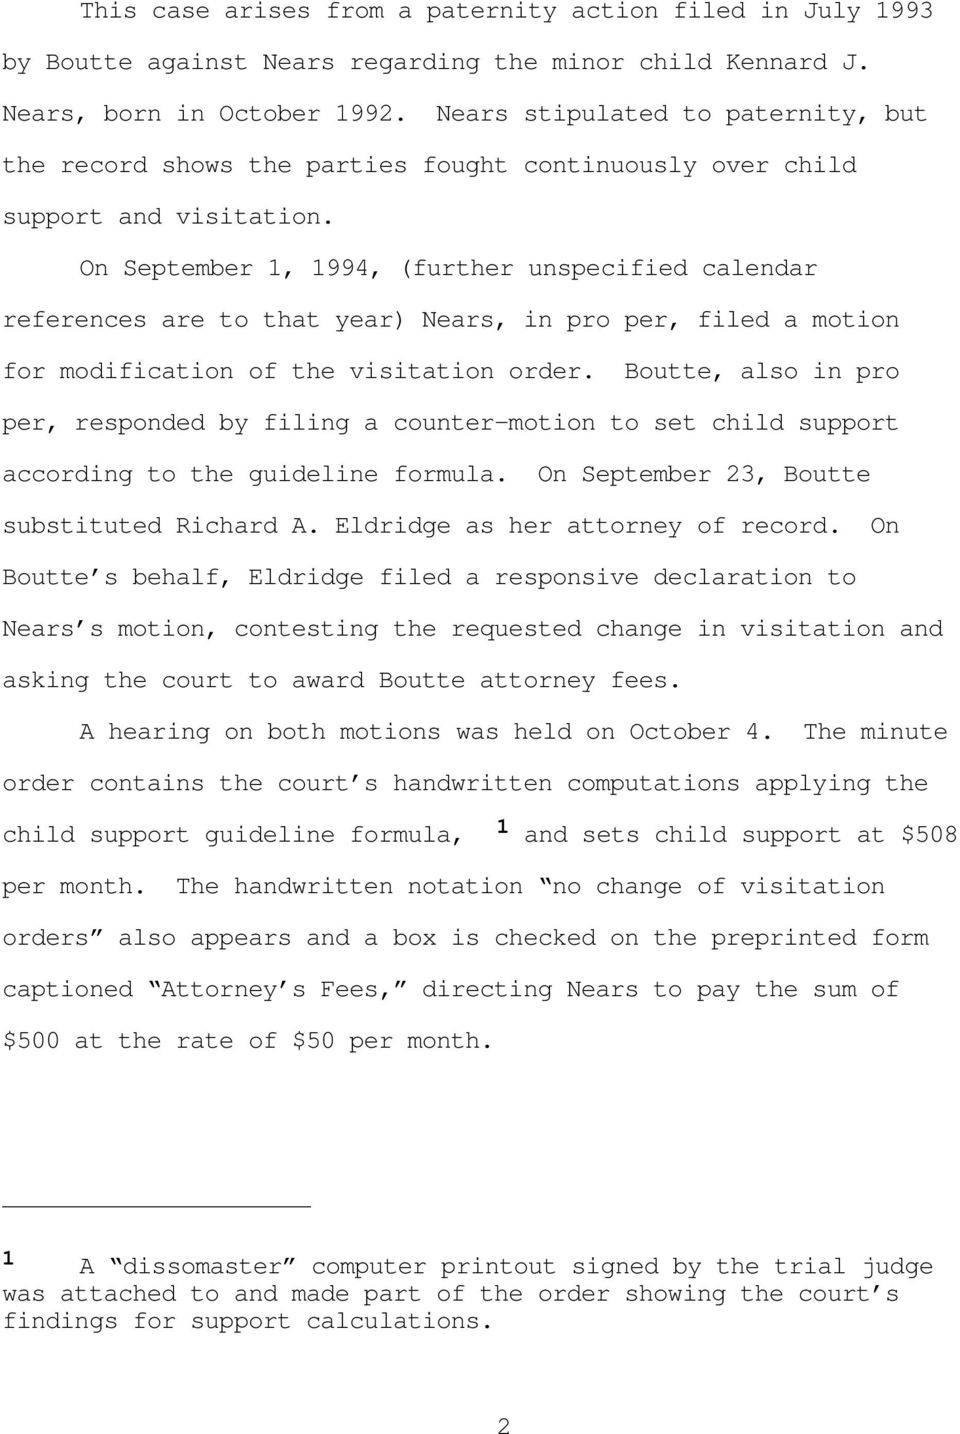 On September 1, 1994, (further unspecified calendar references are to that year) Nears, in pro per, filed a motion for modification of the visitation order.